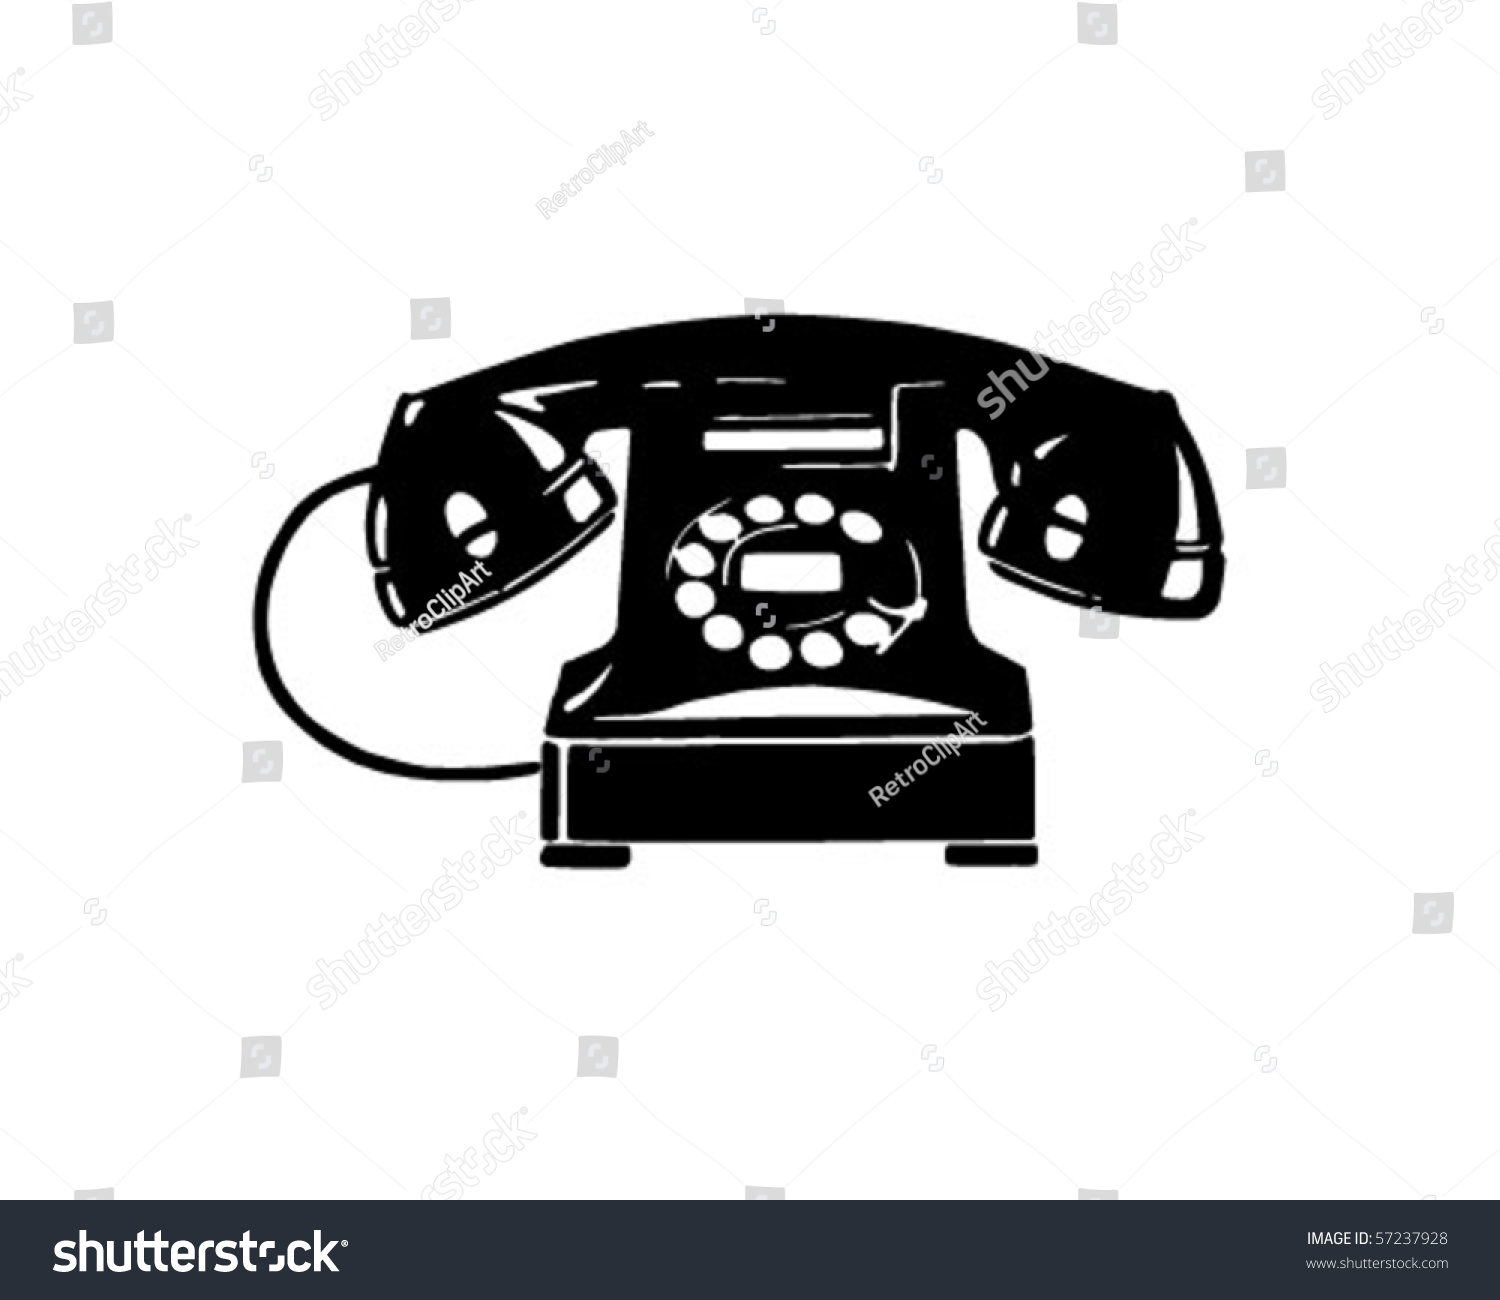 vintage telephone clipart - photo #48